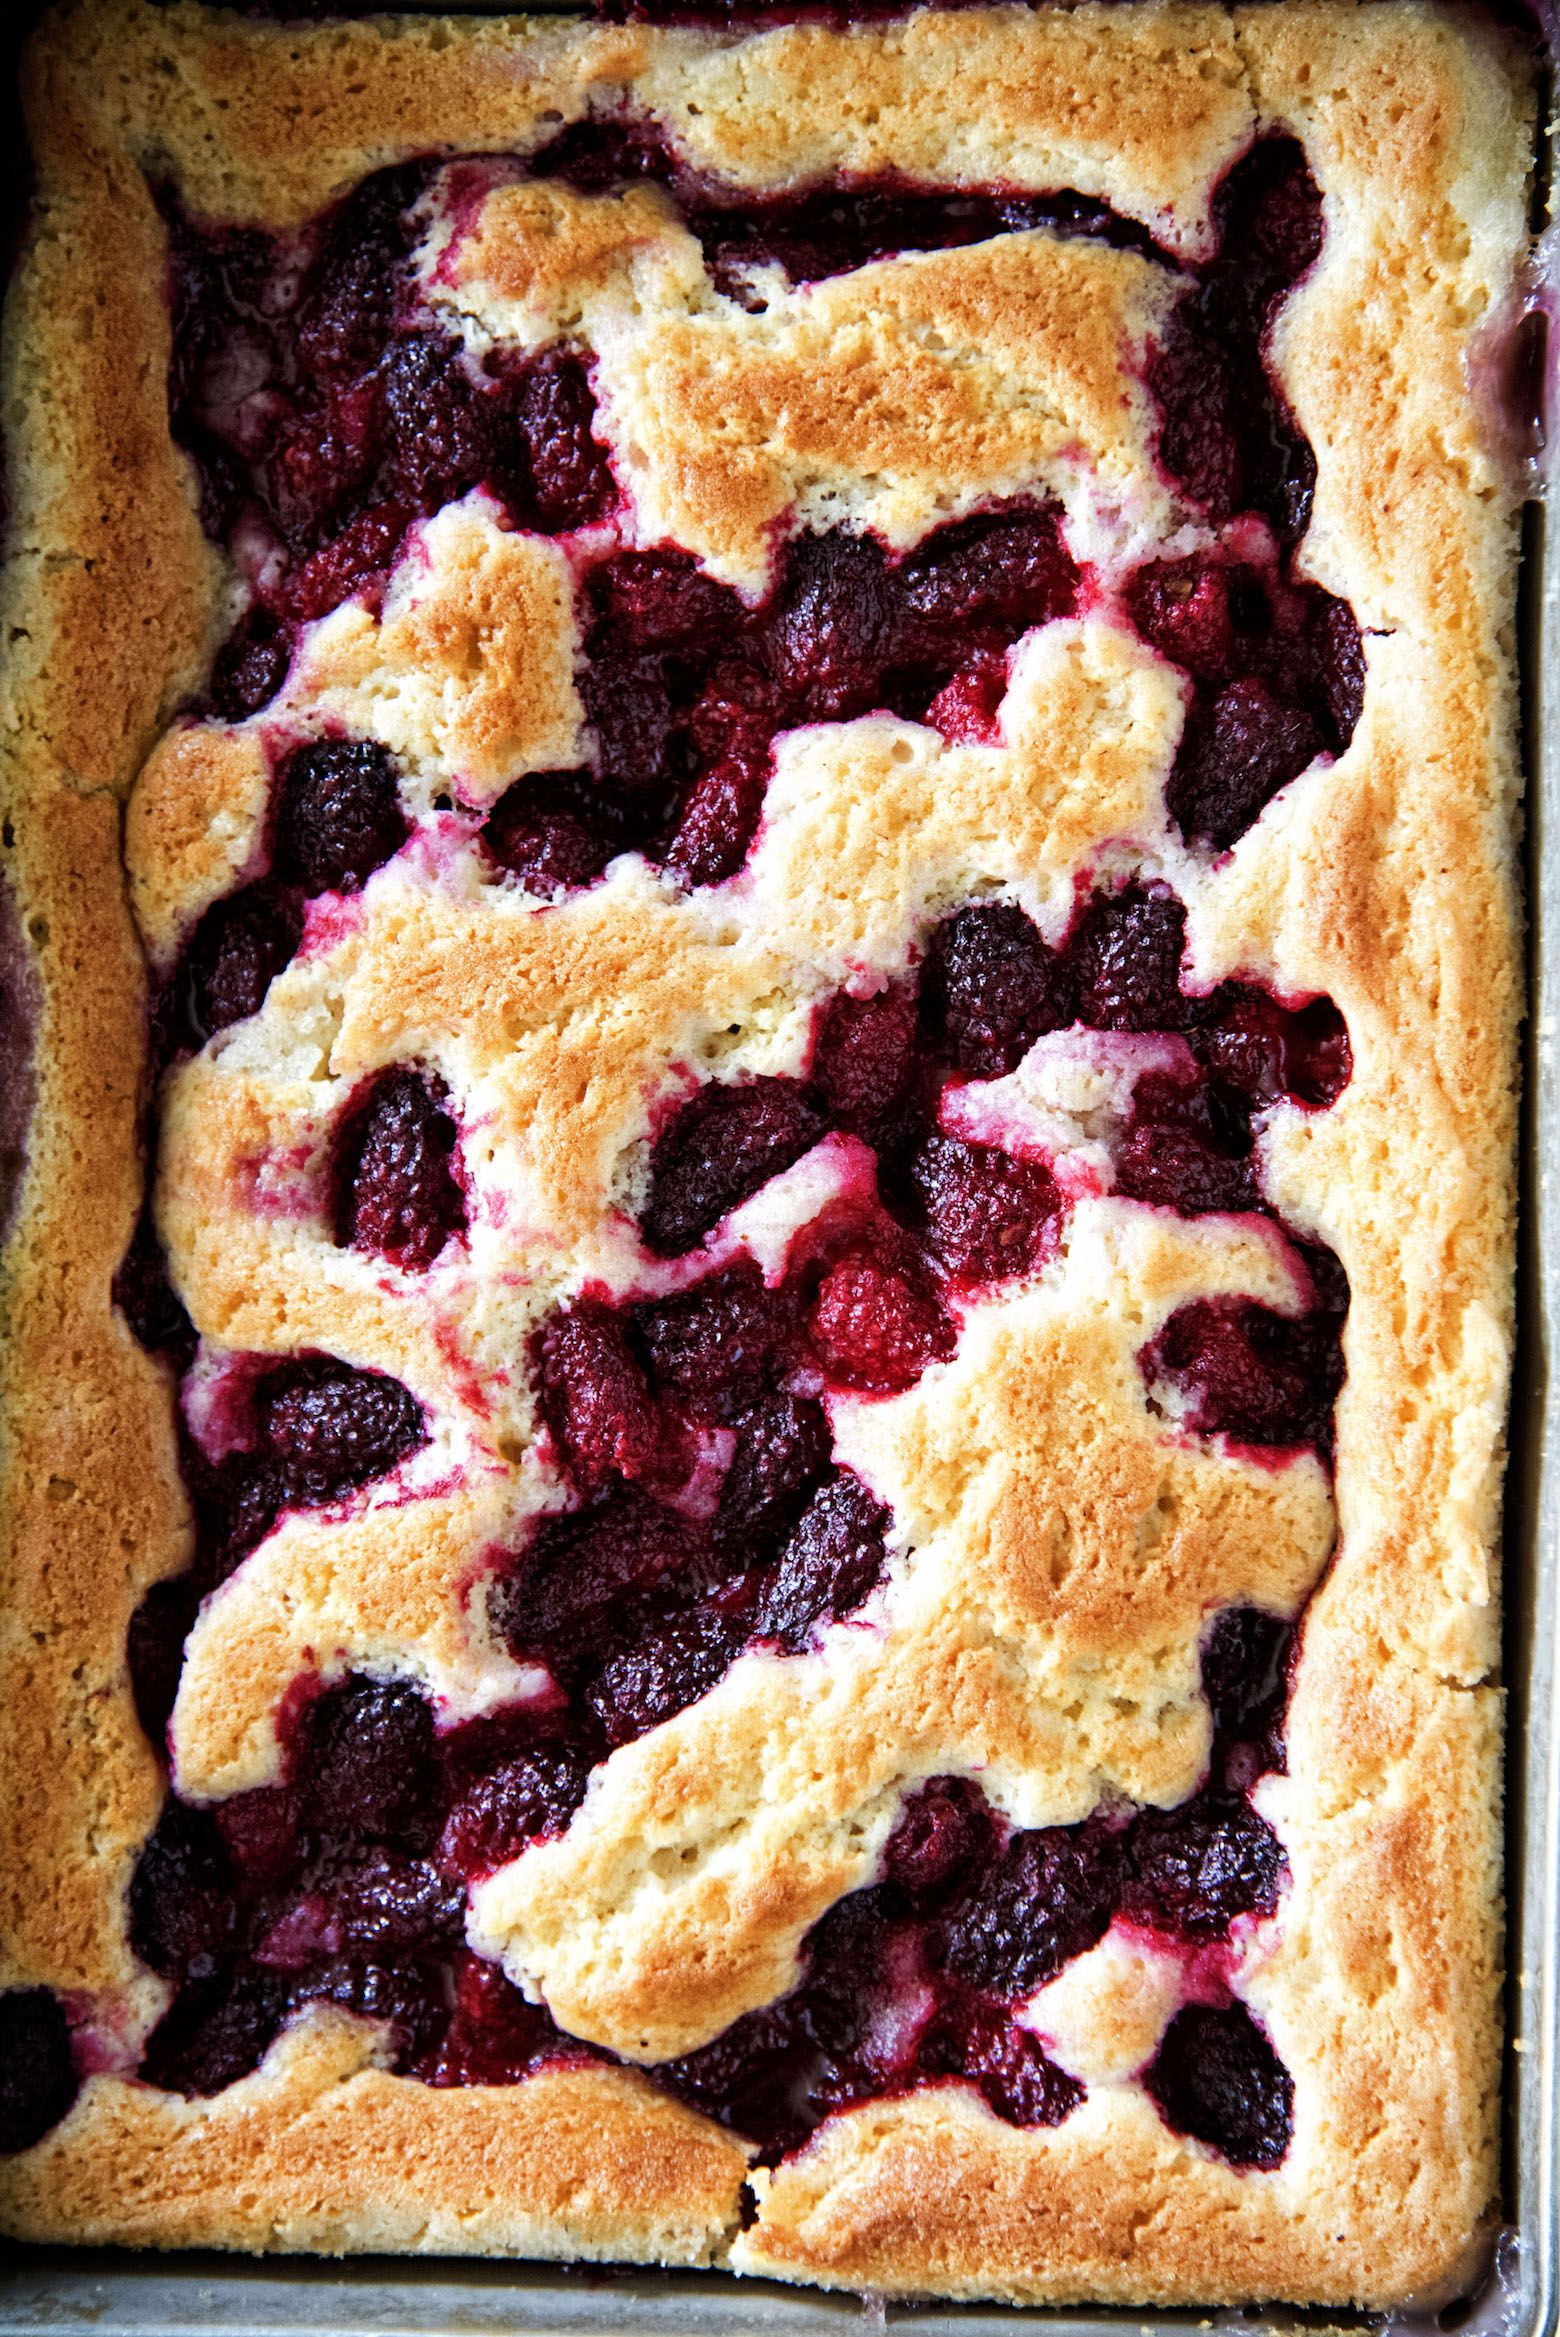 Overhead shot of the full Tayberry Cobbler